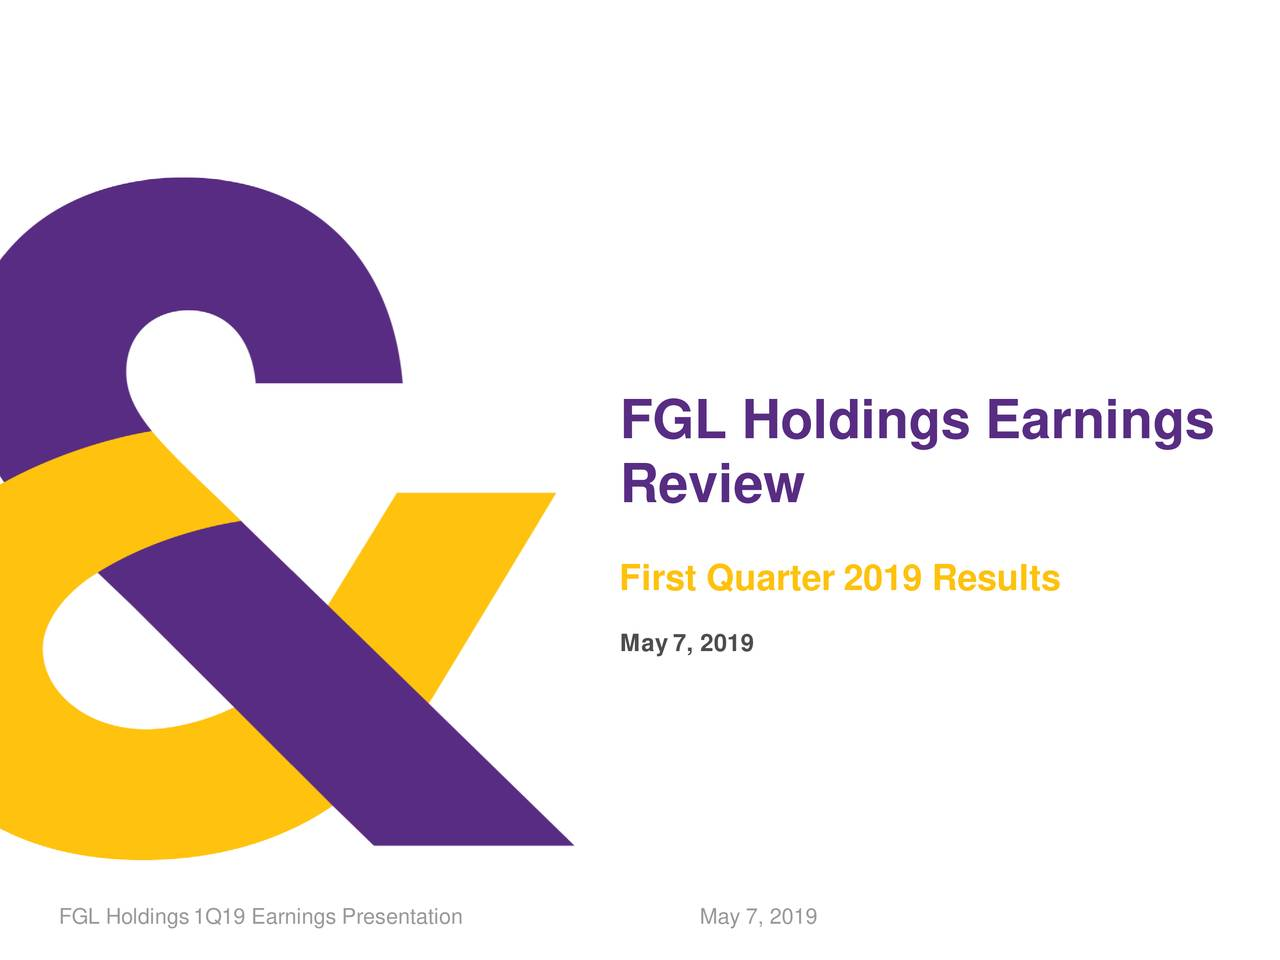 Review First Quarter 2019 Results May7, 2019 FGL Holdings1Q19 Earnings Presentation May 7, 2019 1